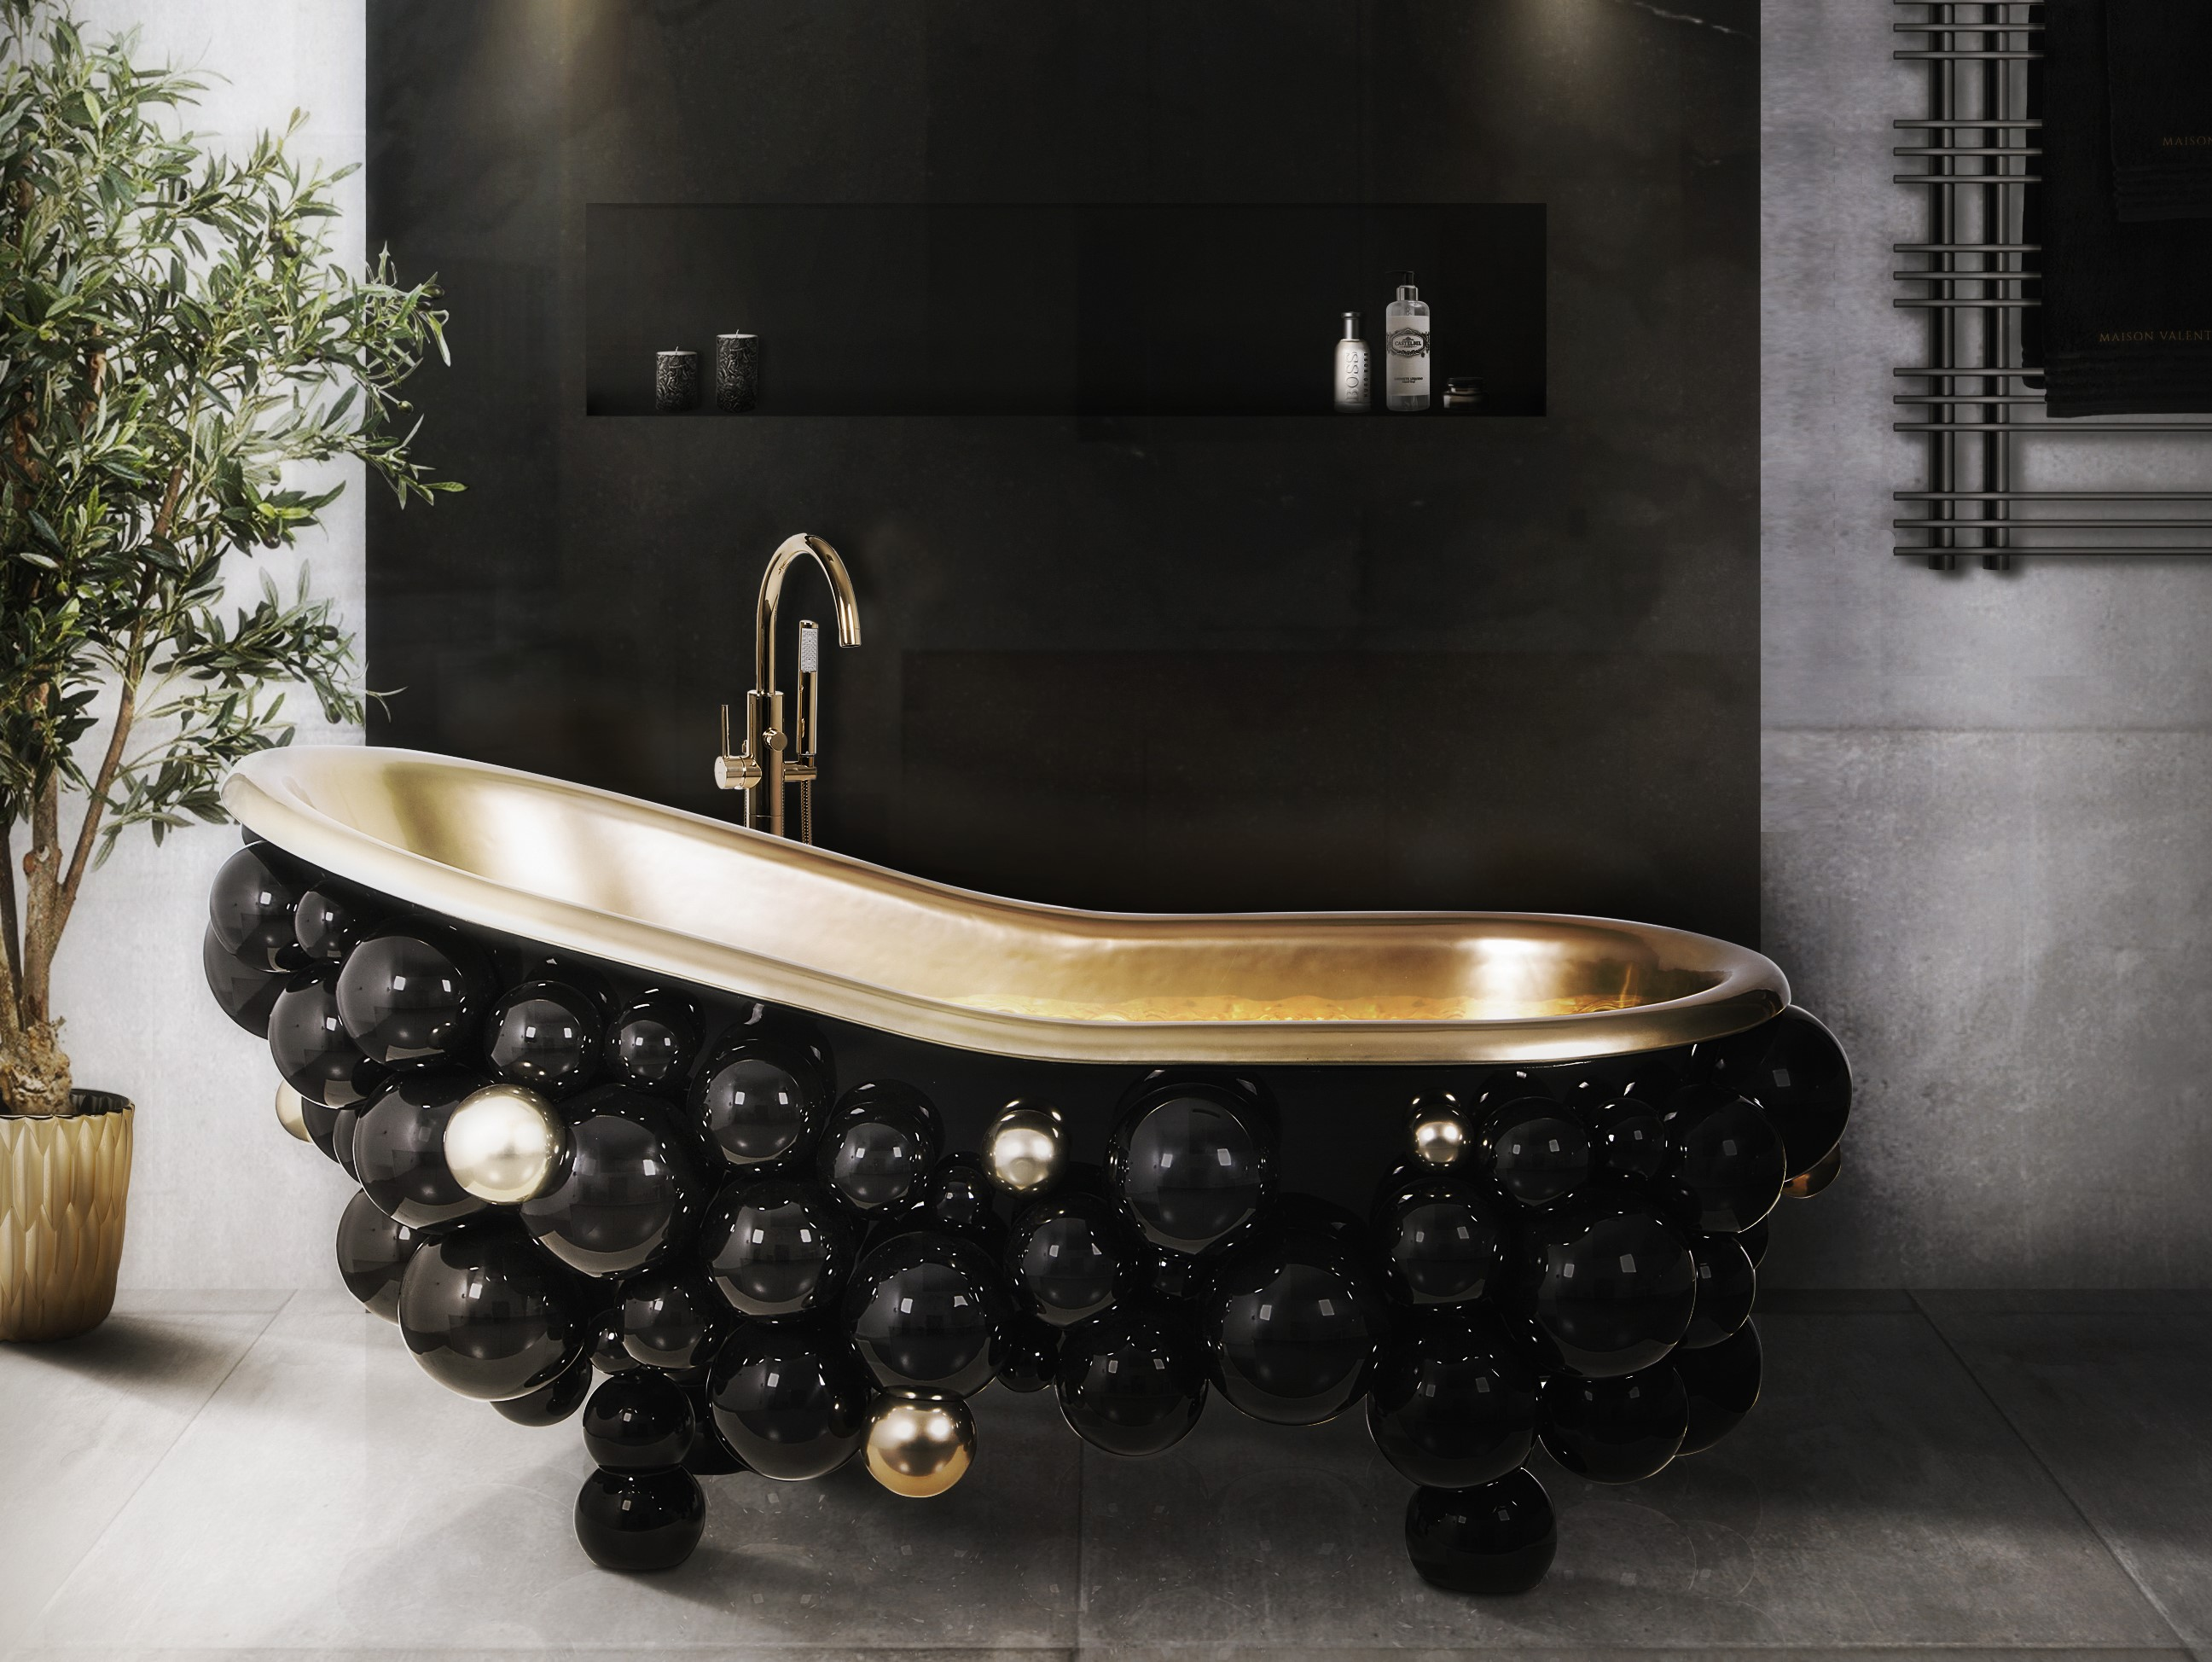 black bathroom ideas 5 Black Bathroom Ideas to Upgrade Your Home 14 newton bathtub saki pendant maison valentina 1 HR 2